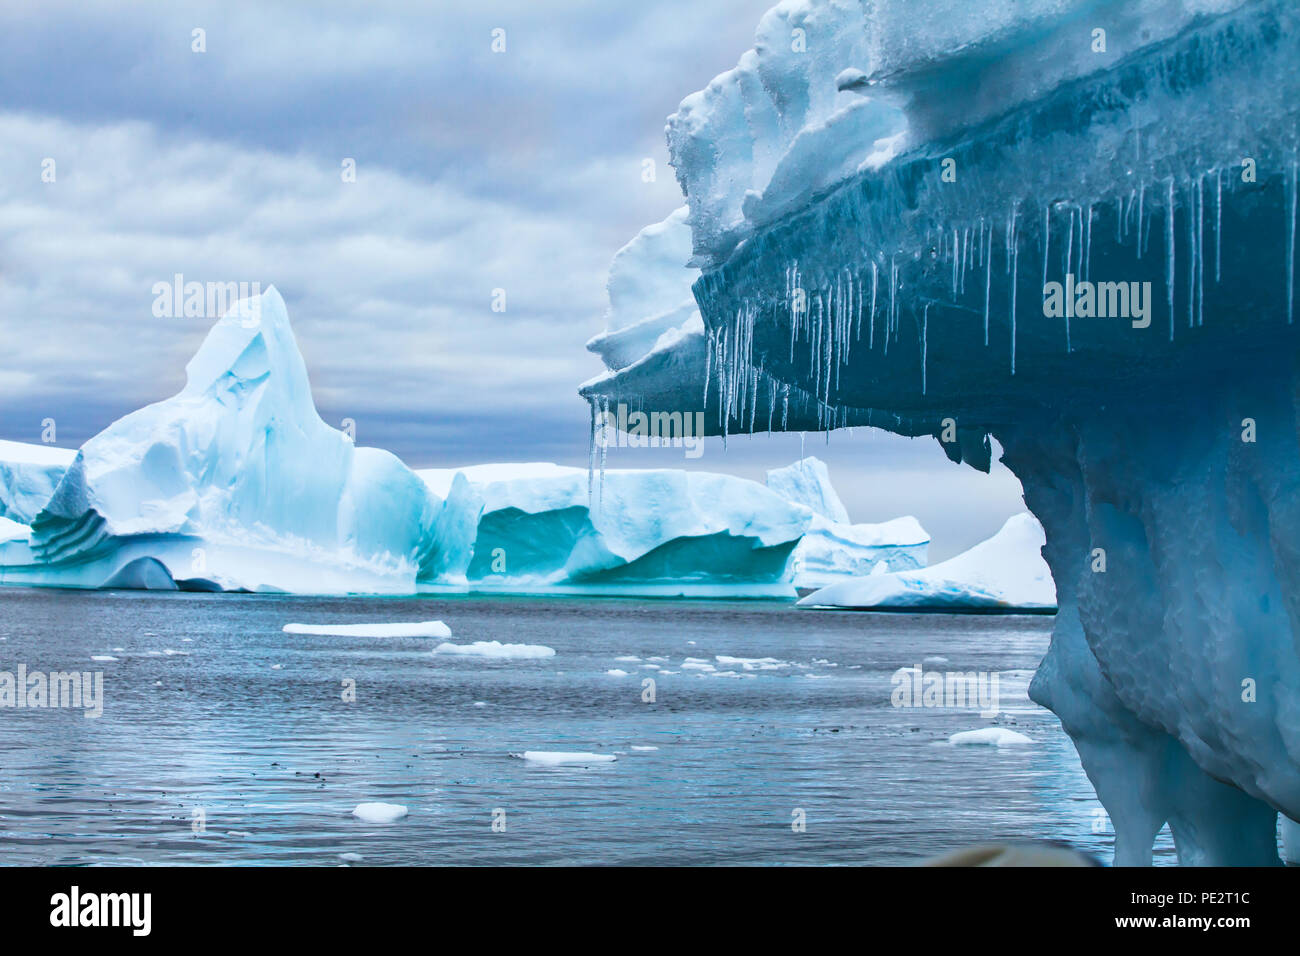 global warming and climate change concept, iceberg melting in Antarctica - Stock Image